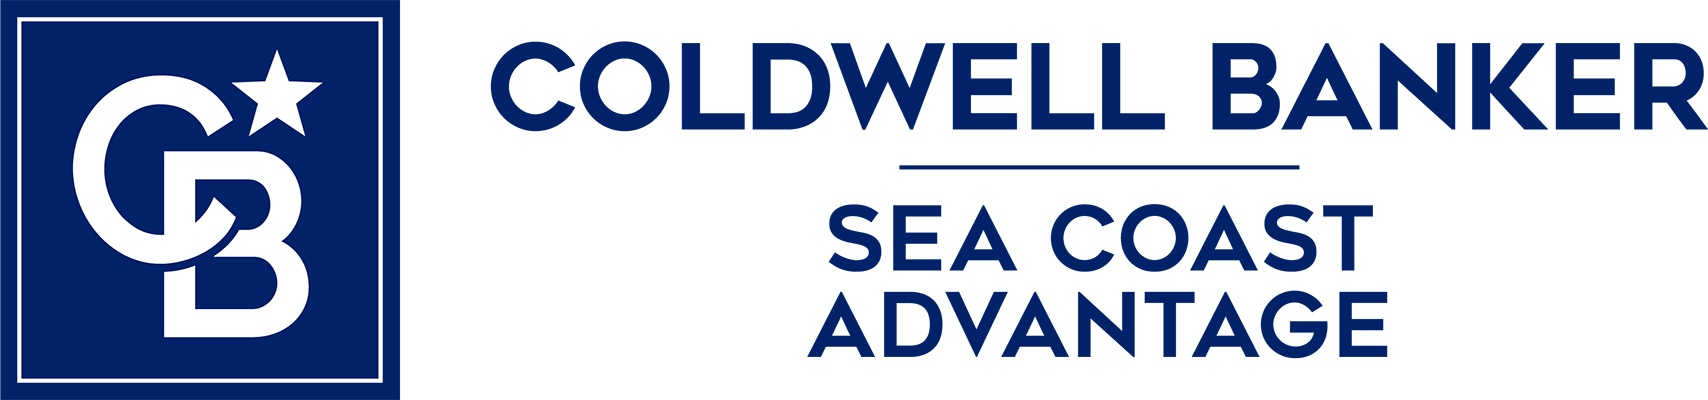 Melanie Cameron - Coldwell Banker Sea Coast Advantage Realty Logo